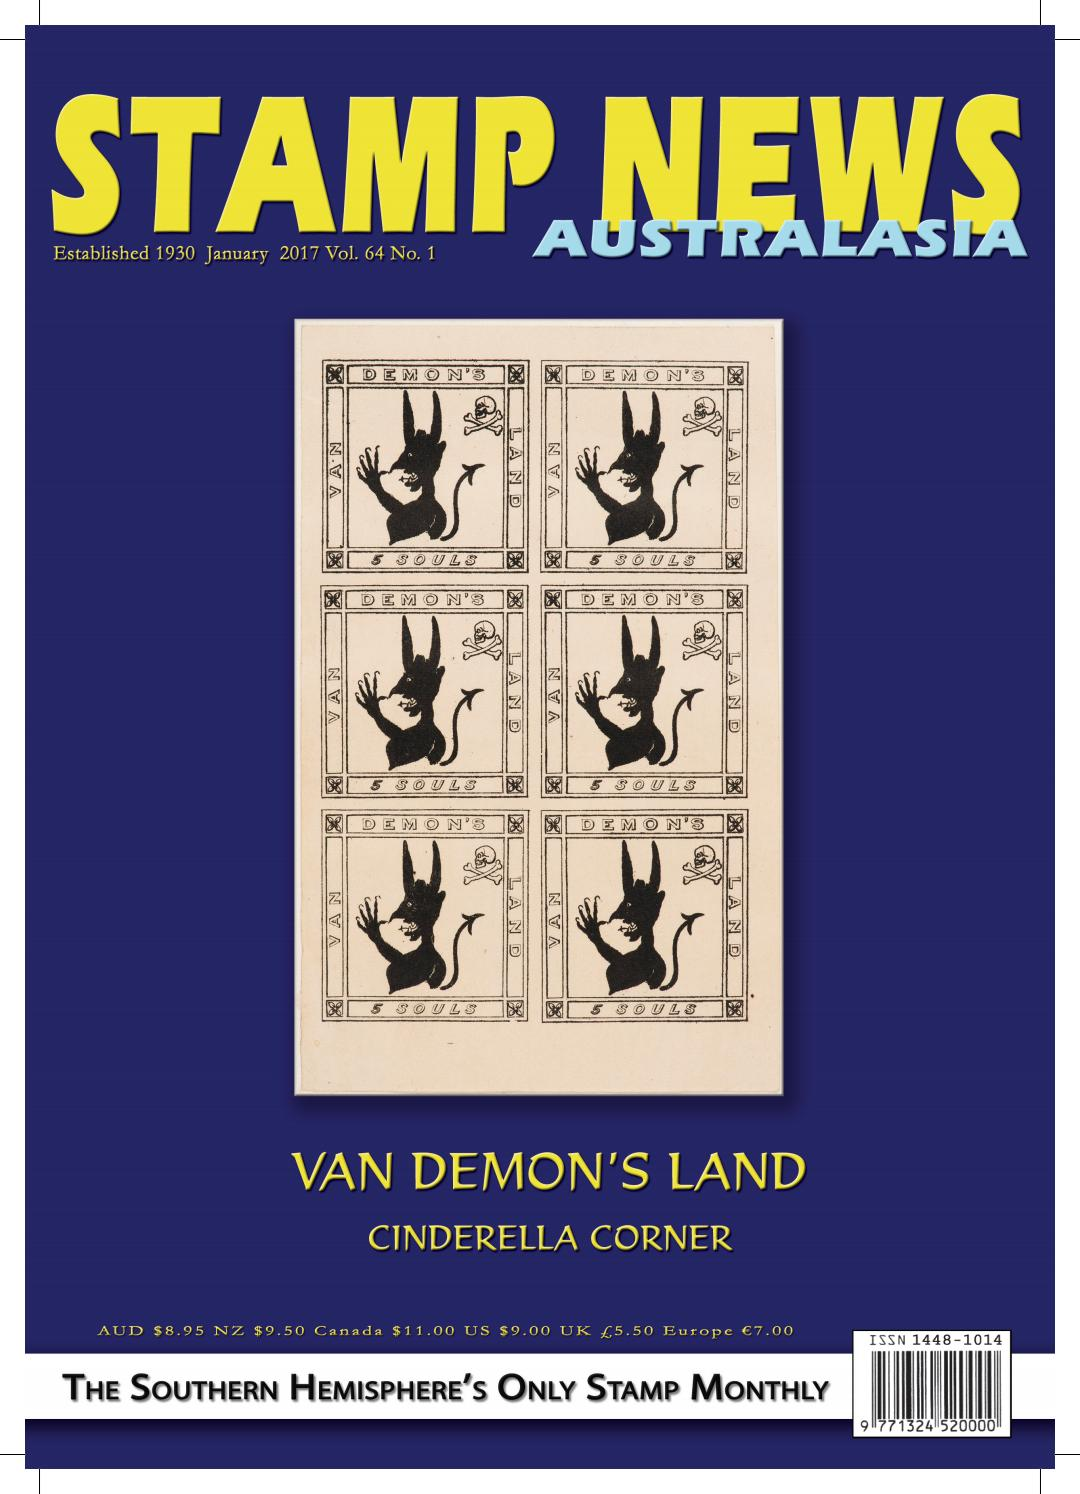 Stamp news australasia january 2017 by stamp news australasia issuu fandeluxe Image collections